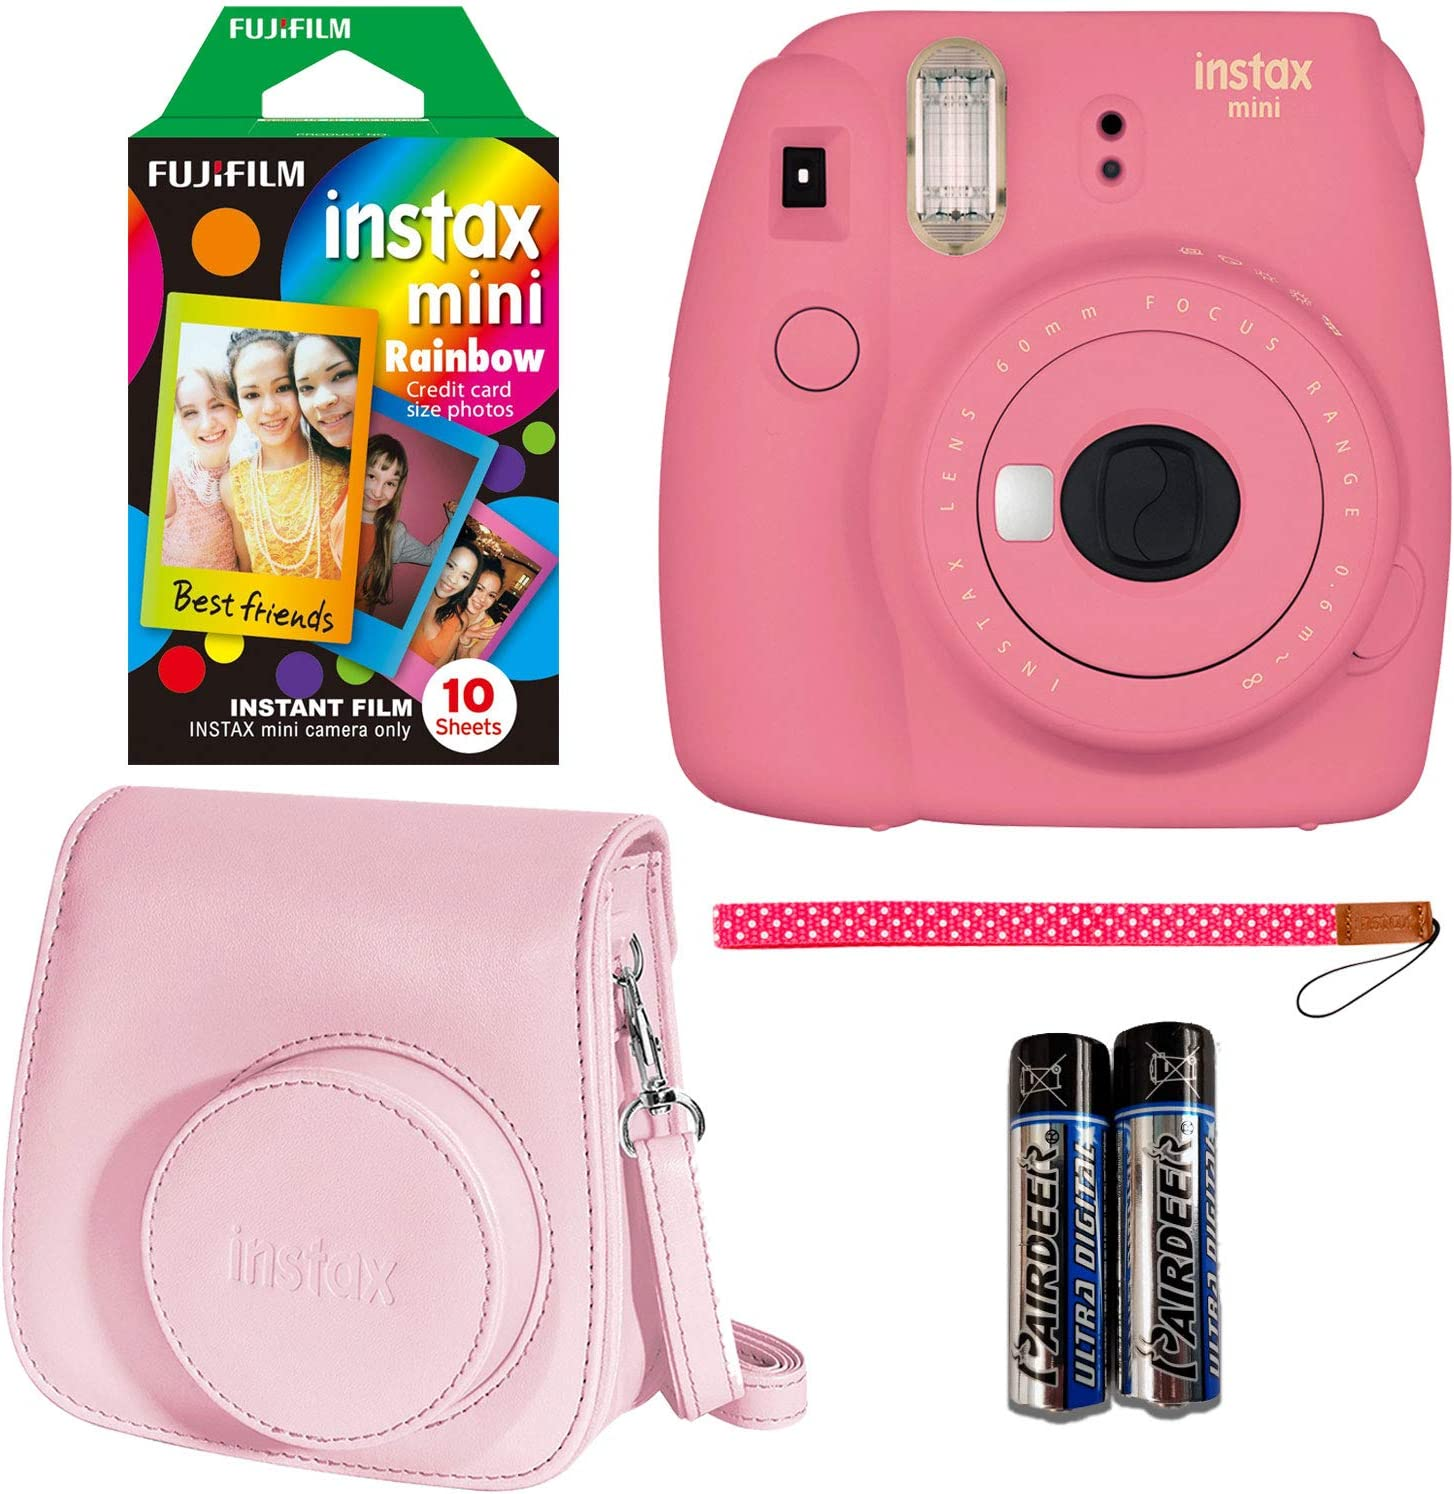 Fujifilm Instax Mini 9 Instant Camera Flamingo Pink Fujifilm Instant Mini Rainbow Film And Fujifilm Instax Groovy Camera Case Pink Camera Photo